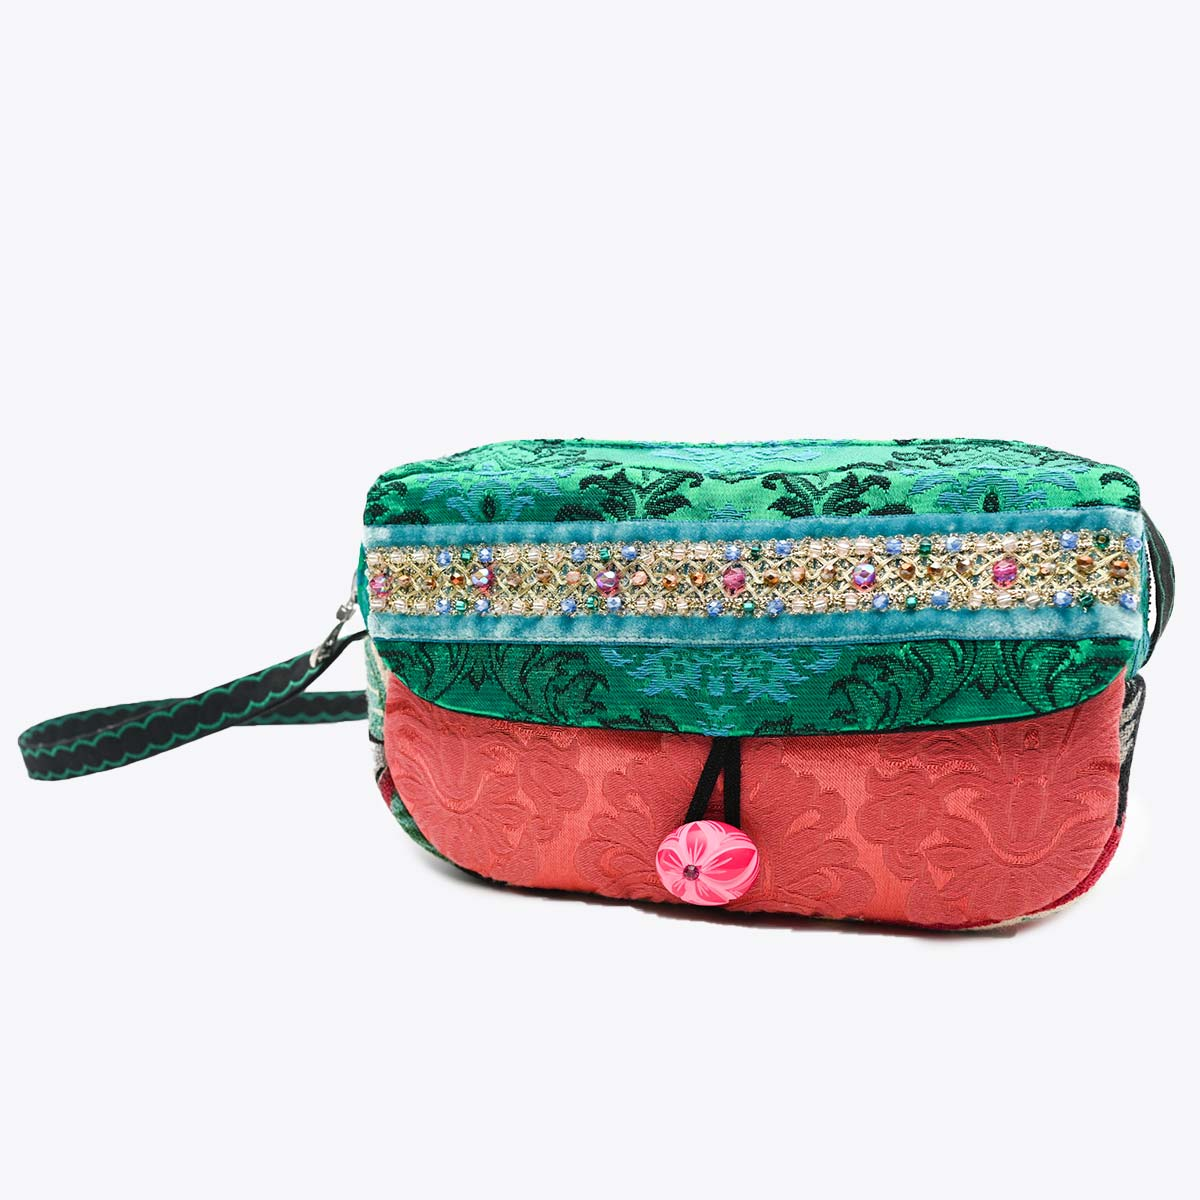 cruise bag Hand Beaded teal pink